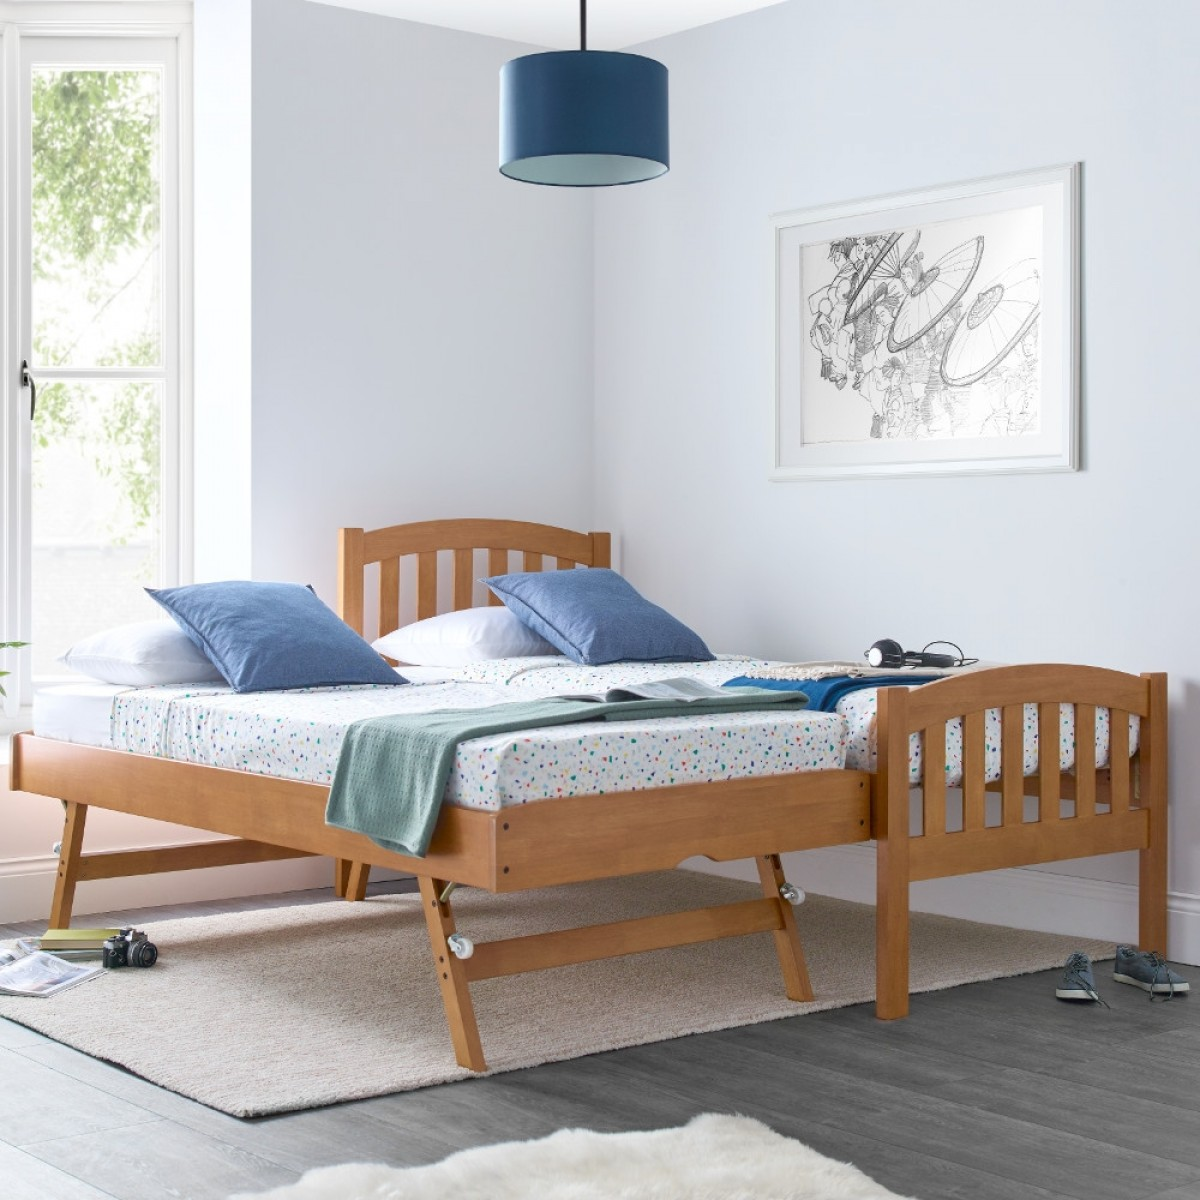 Blake Oak Wooden Guest Bed and Trundle